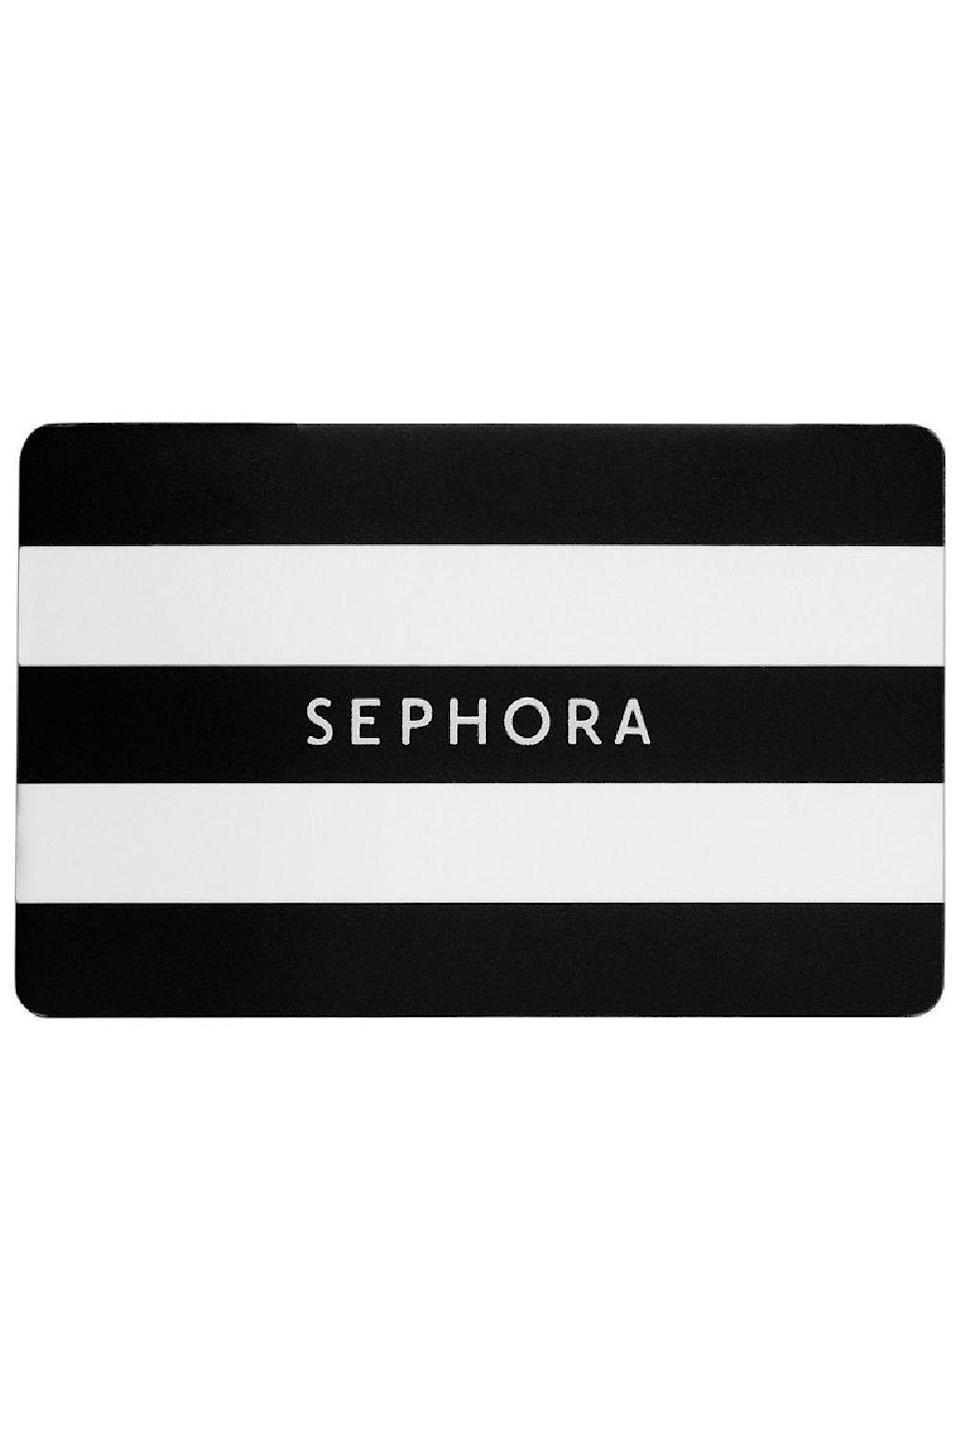 """<p><strong>SEPHORA COLLECTION</strong></p><p>sephora.com</p><p><a href=""""https://go.redirectingat.com?id=74968X1596630&url=https%3A%2F%2Fwww.sephora.com%2Fproduct%2Fgift-card-P370325&sref=https%3A%2F%2Fwww.cosmopolitan.com%2Fstyle-beauty%2Ffashion%2Fg34229001%2Fbest-gift-card-ideas-to-give%2F"""" rel=""""nofollow noopener"""" target=""""_blank"""" data-ylk=""""slk:Shop Now"""" class=""""link rapid-noclick-resp"""">Shop Now</a></p><p>Not only the makeup-obsessed would want one of these bad boys. With all the skincare, haircare, and fragrances they carry, even a makeup newbie could use a gift card to shop here.</p>"""